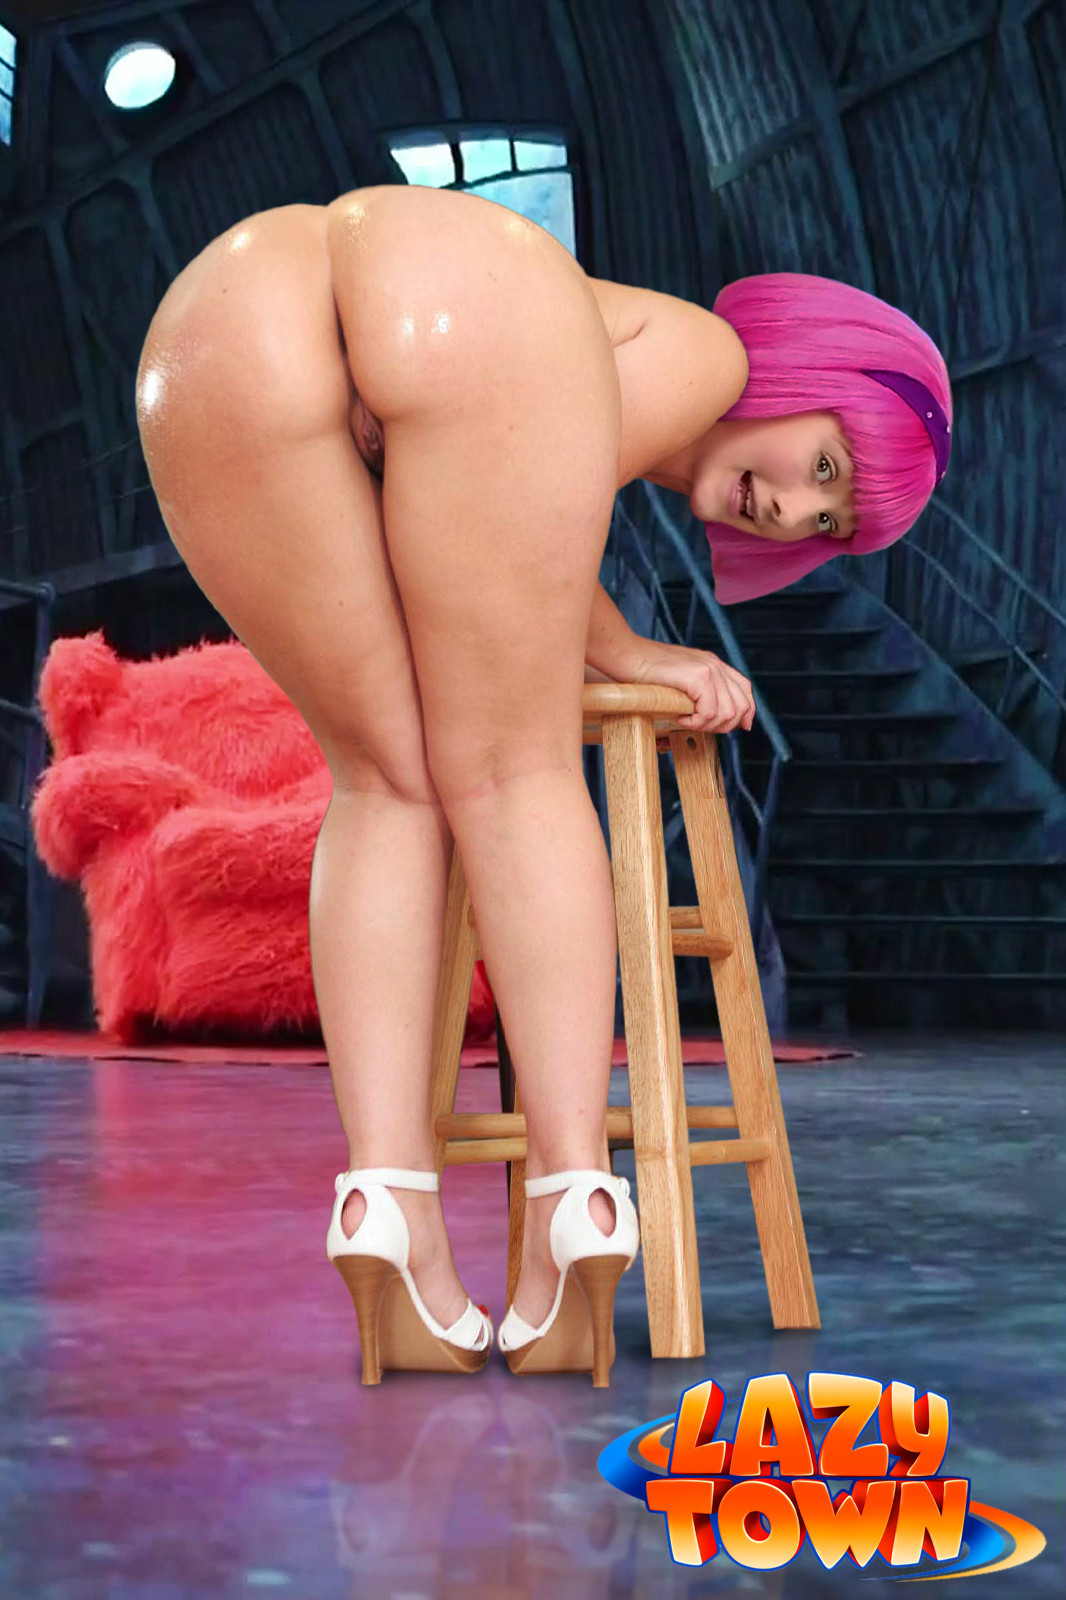 Dirty pic lazy town julianna rose mauriello pussy — 8